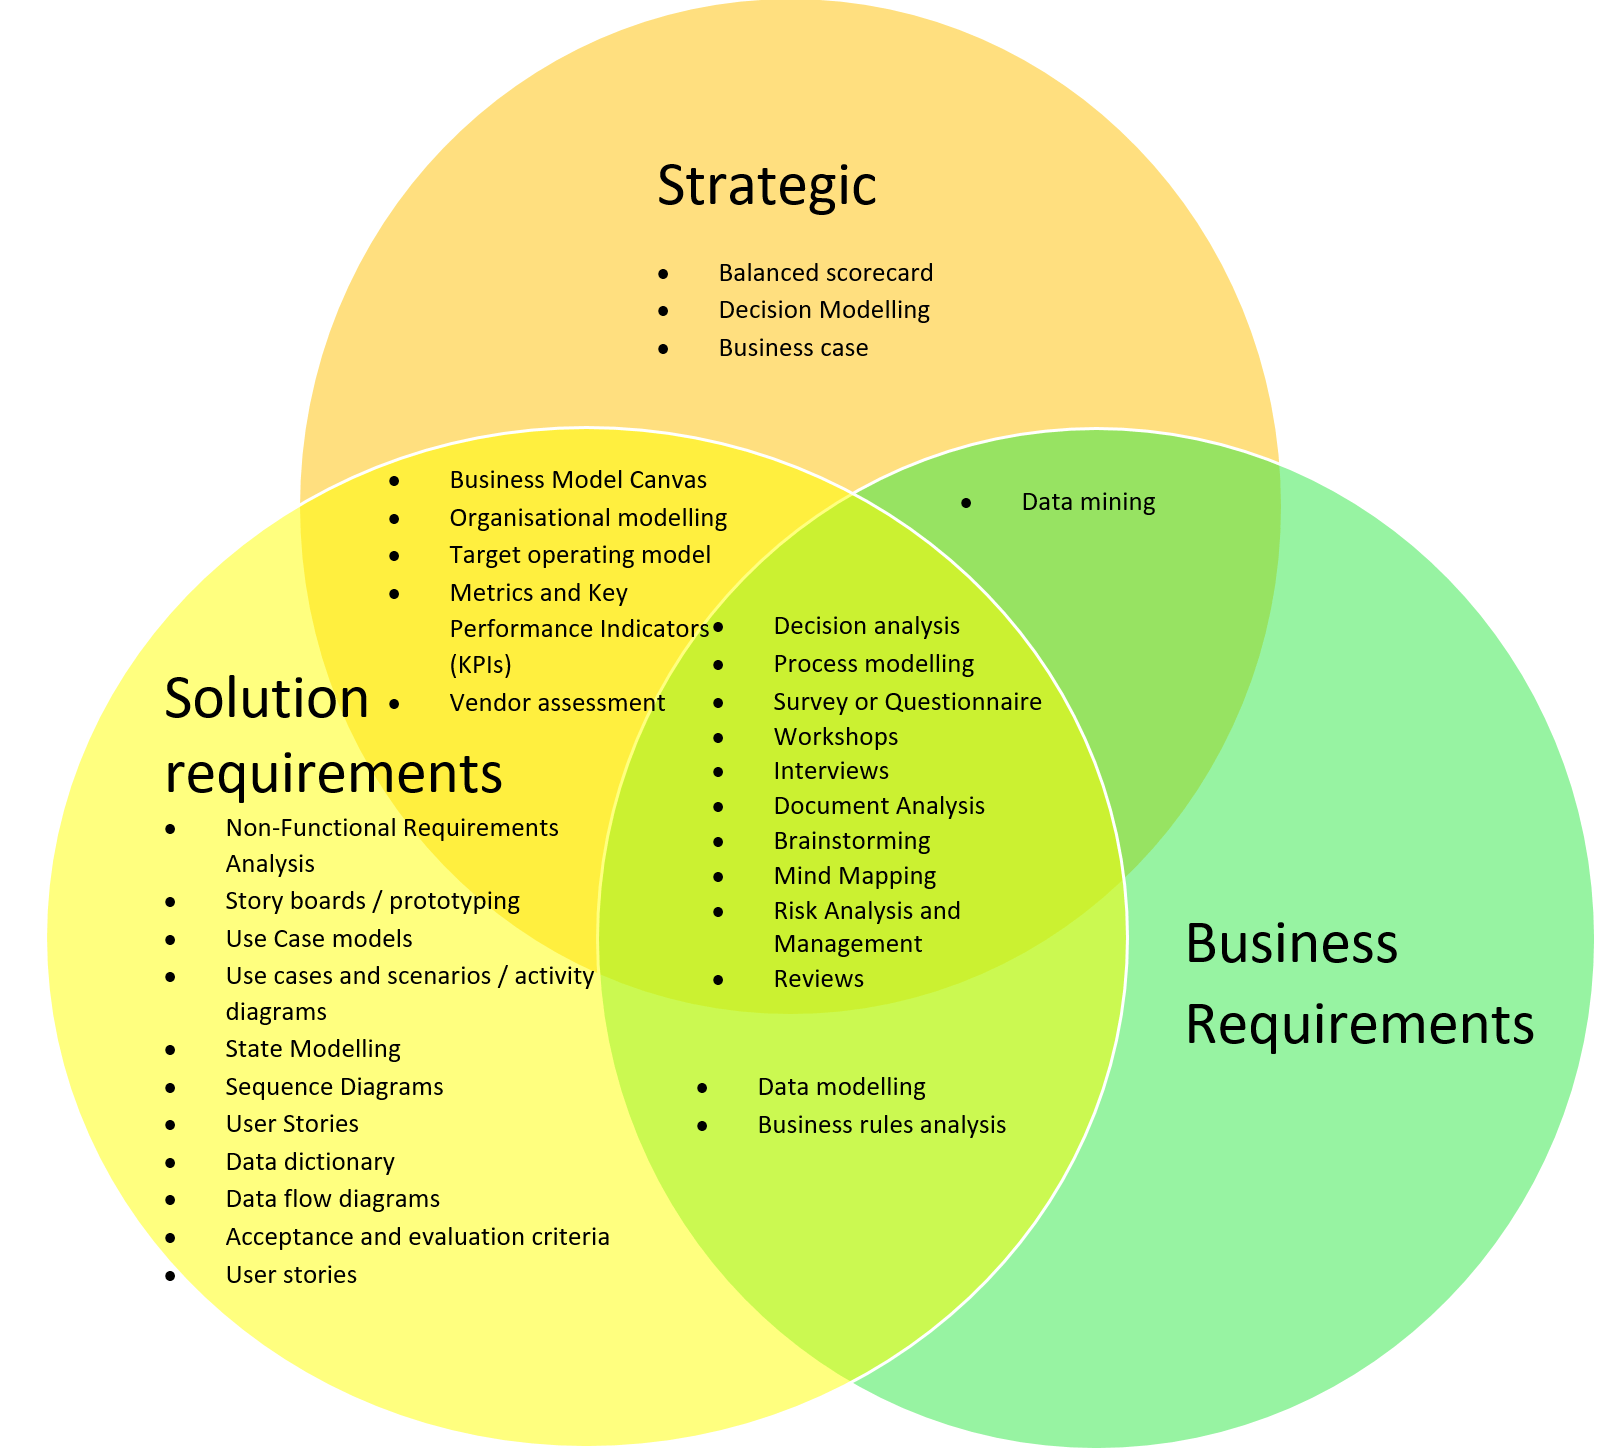 christianity judaism islam venn diagram the water cycle worksheet business analysis techniques benefits and when to use